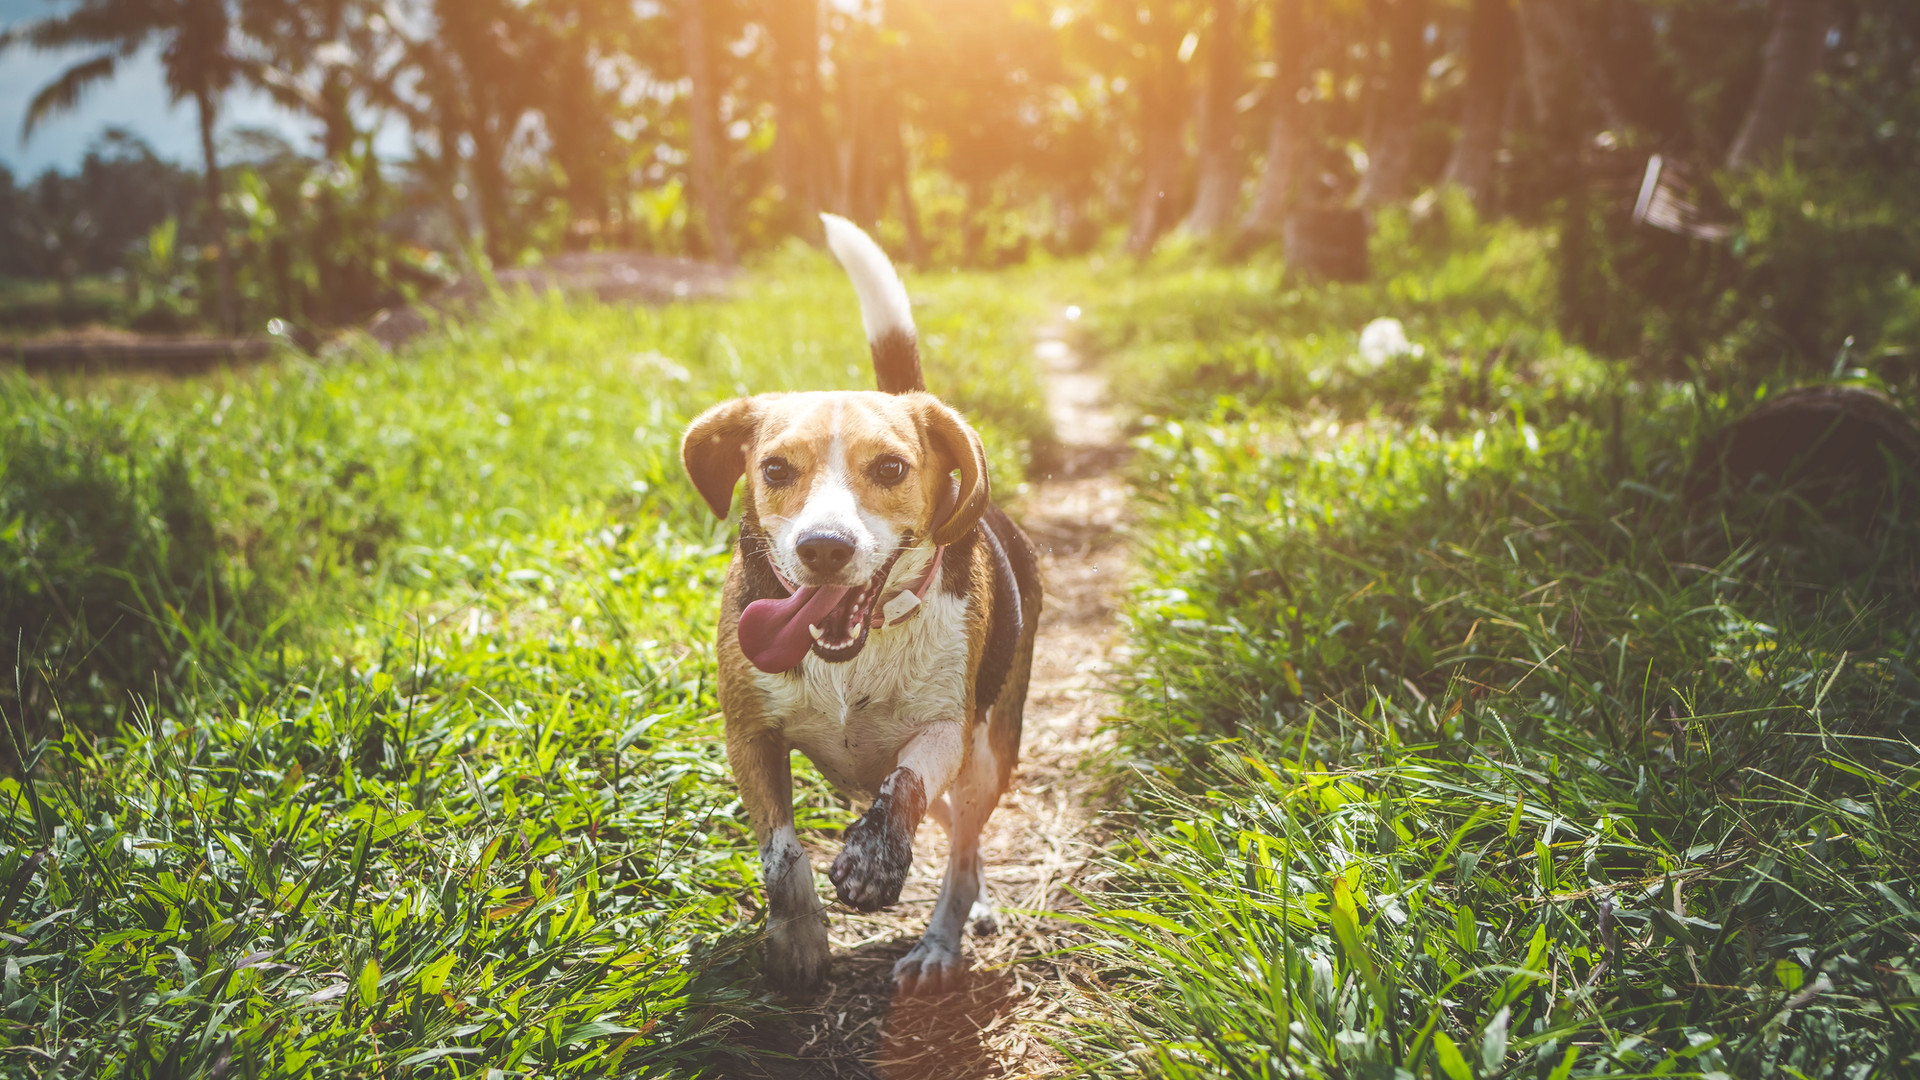 adult-beagle-walking-on-grass-field-1485